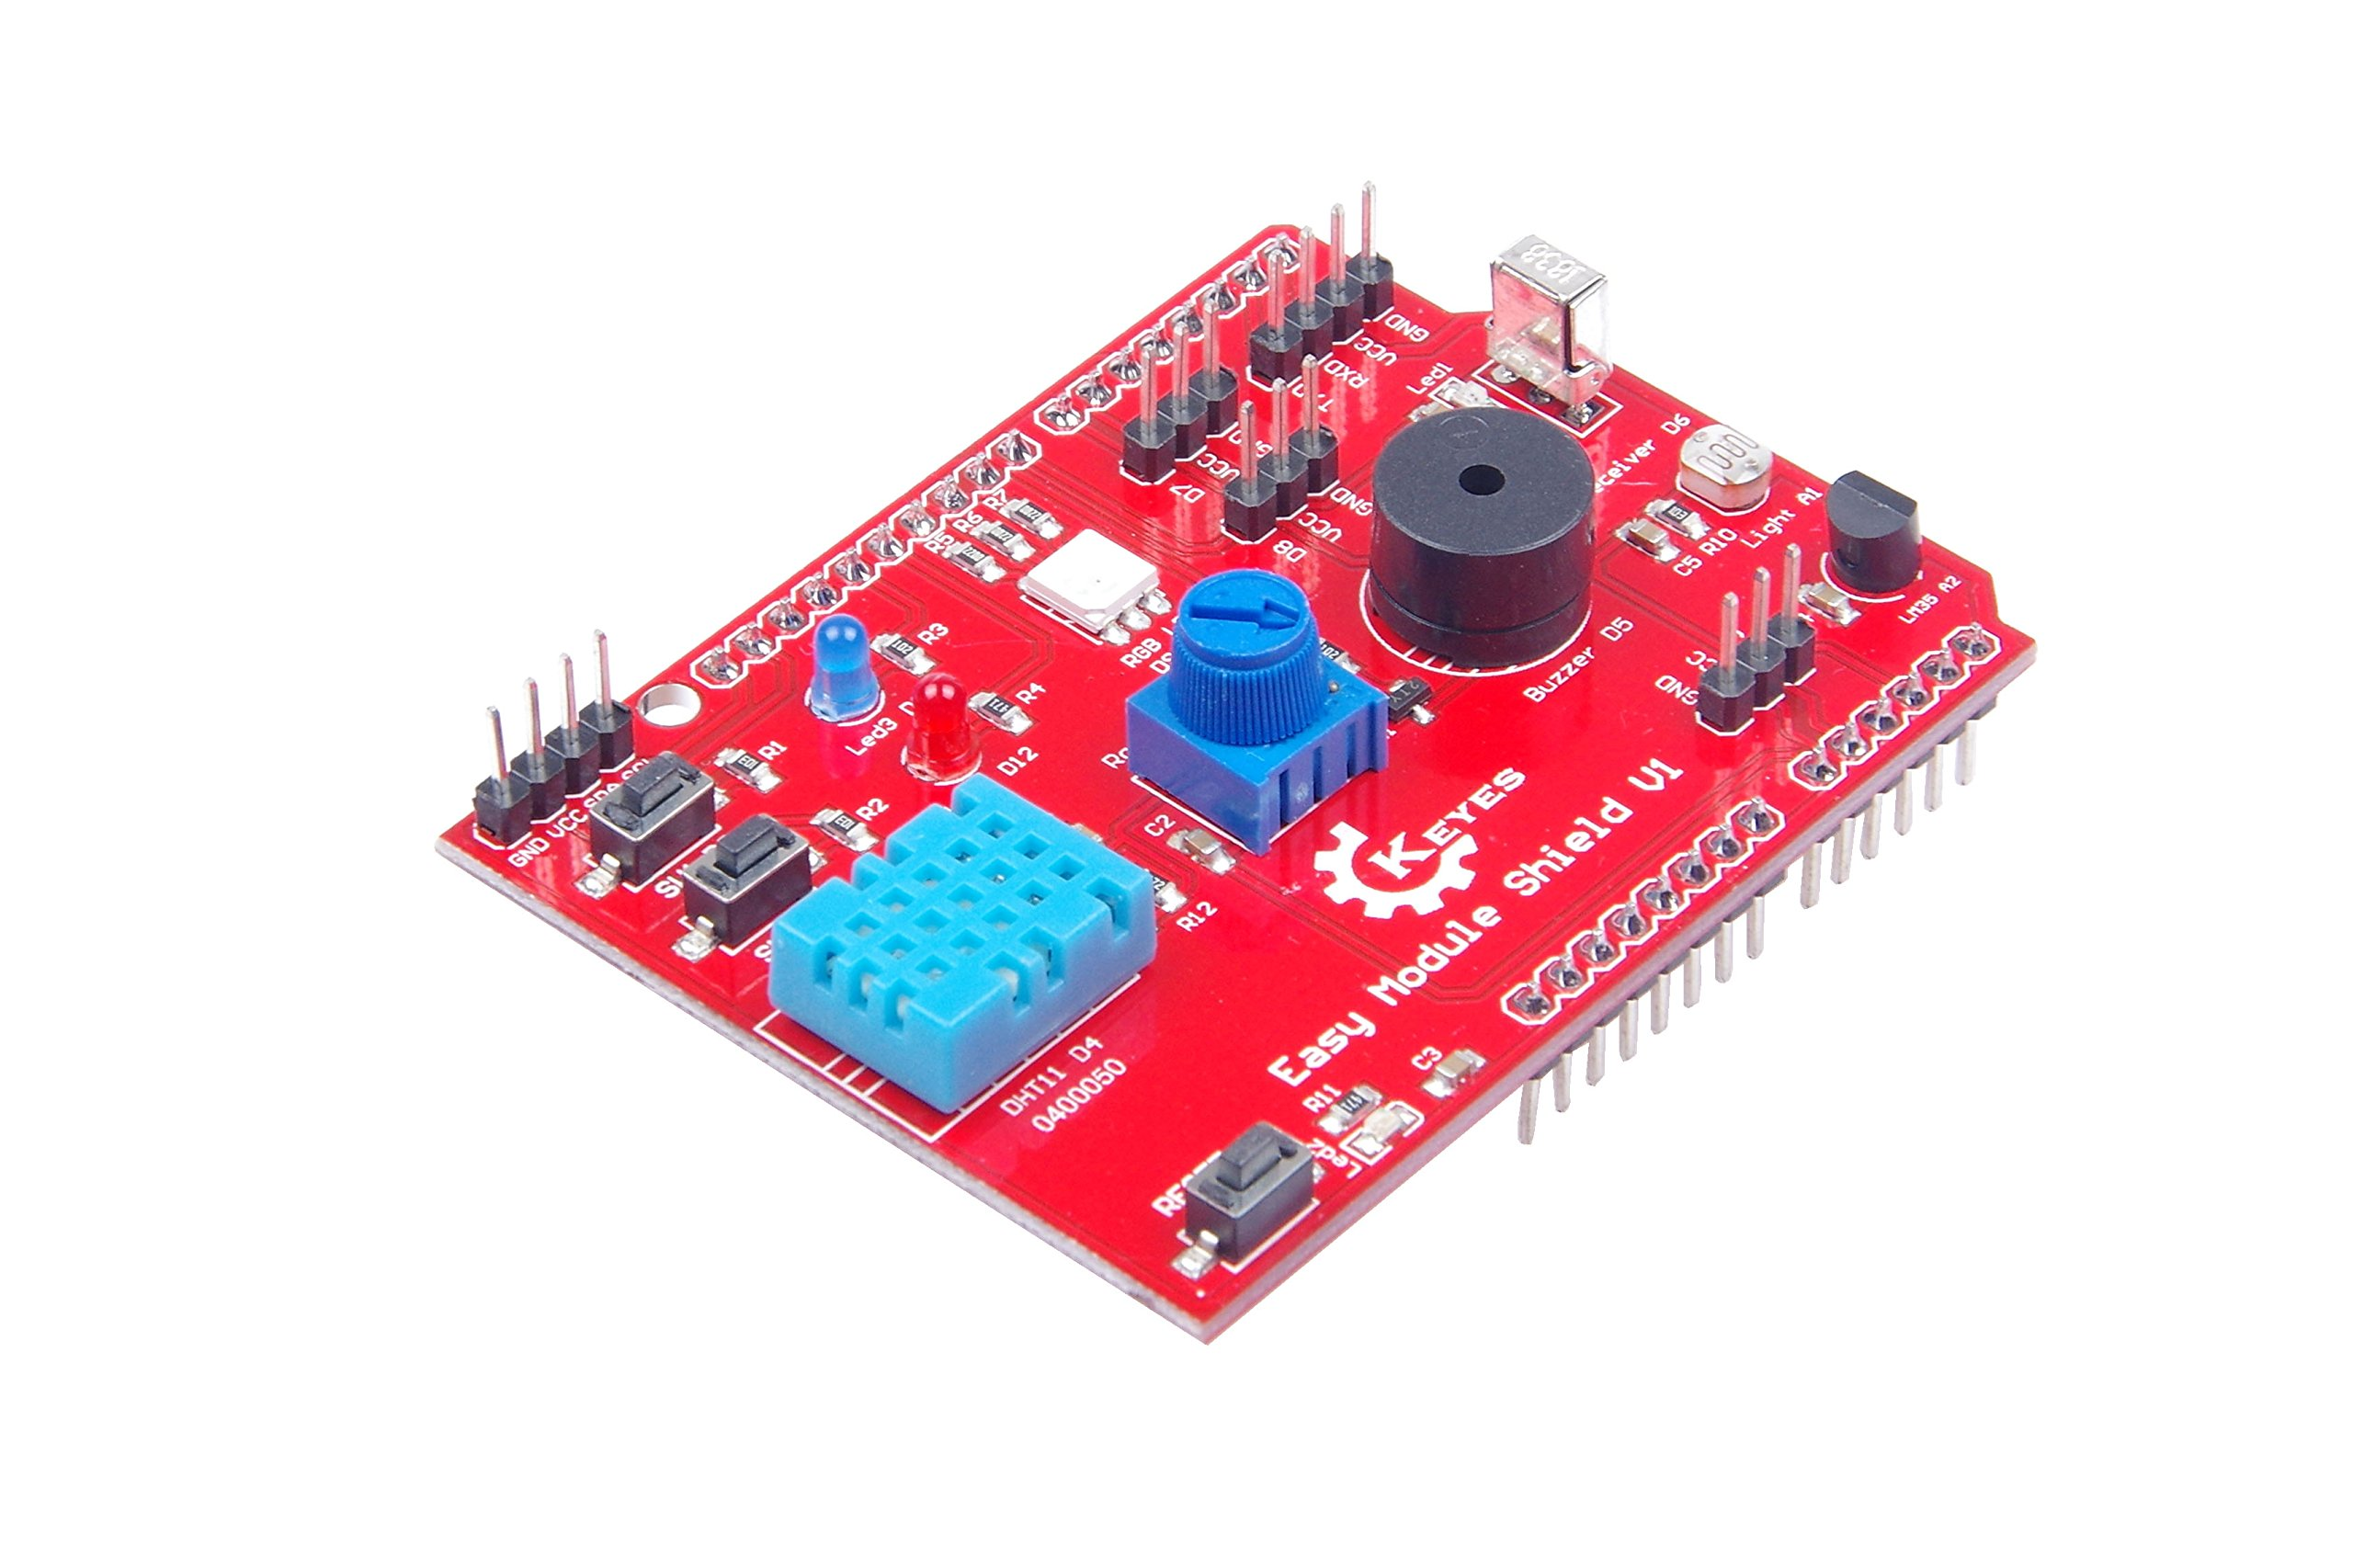 KNACRO Multipurpose Shield V1 Compatible with UNO R3, MEGA2560 R3 For Arduino With 2-way LED lights, 2-way key switch, DHT11 Temperature and Humidity Sensor Module